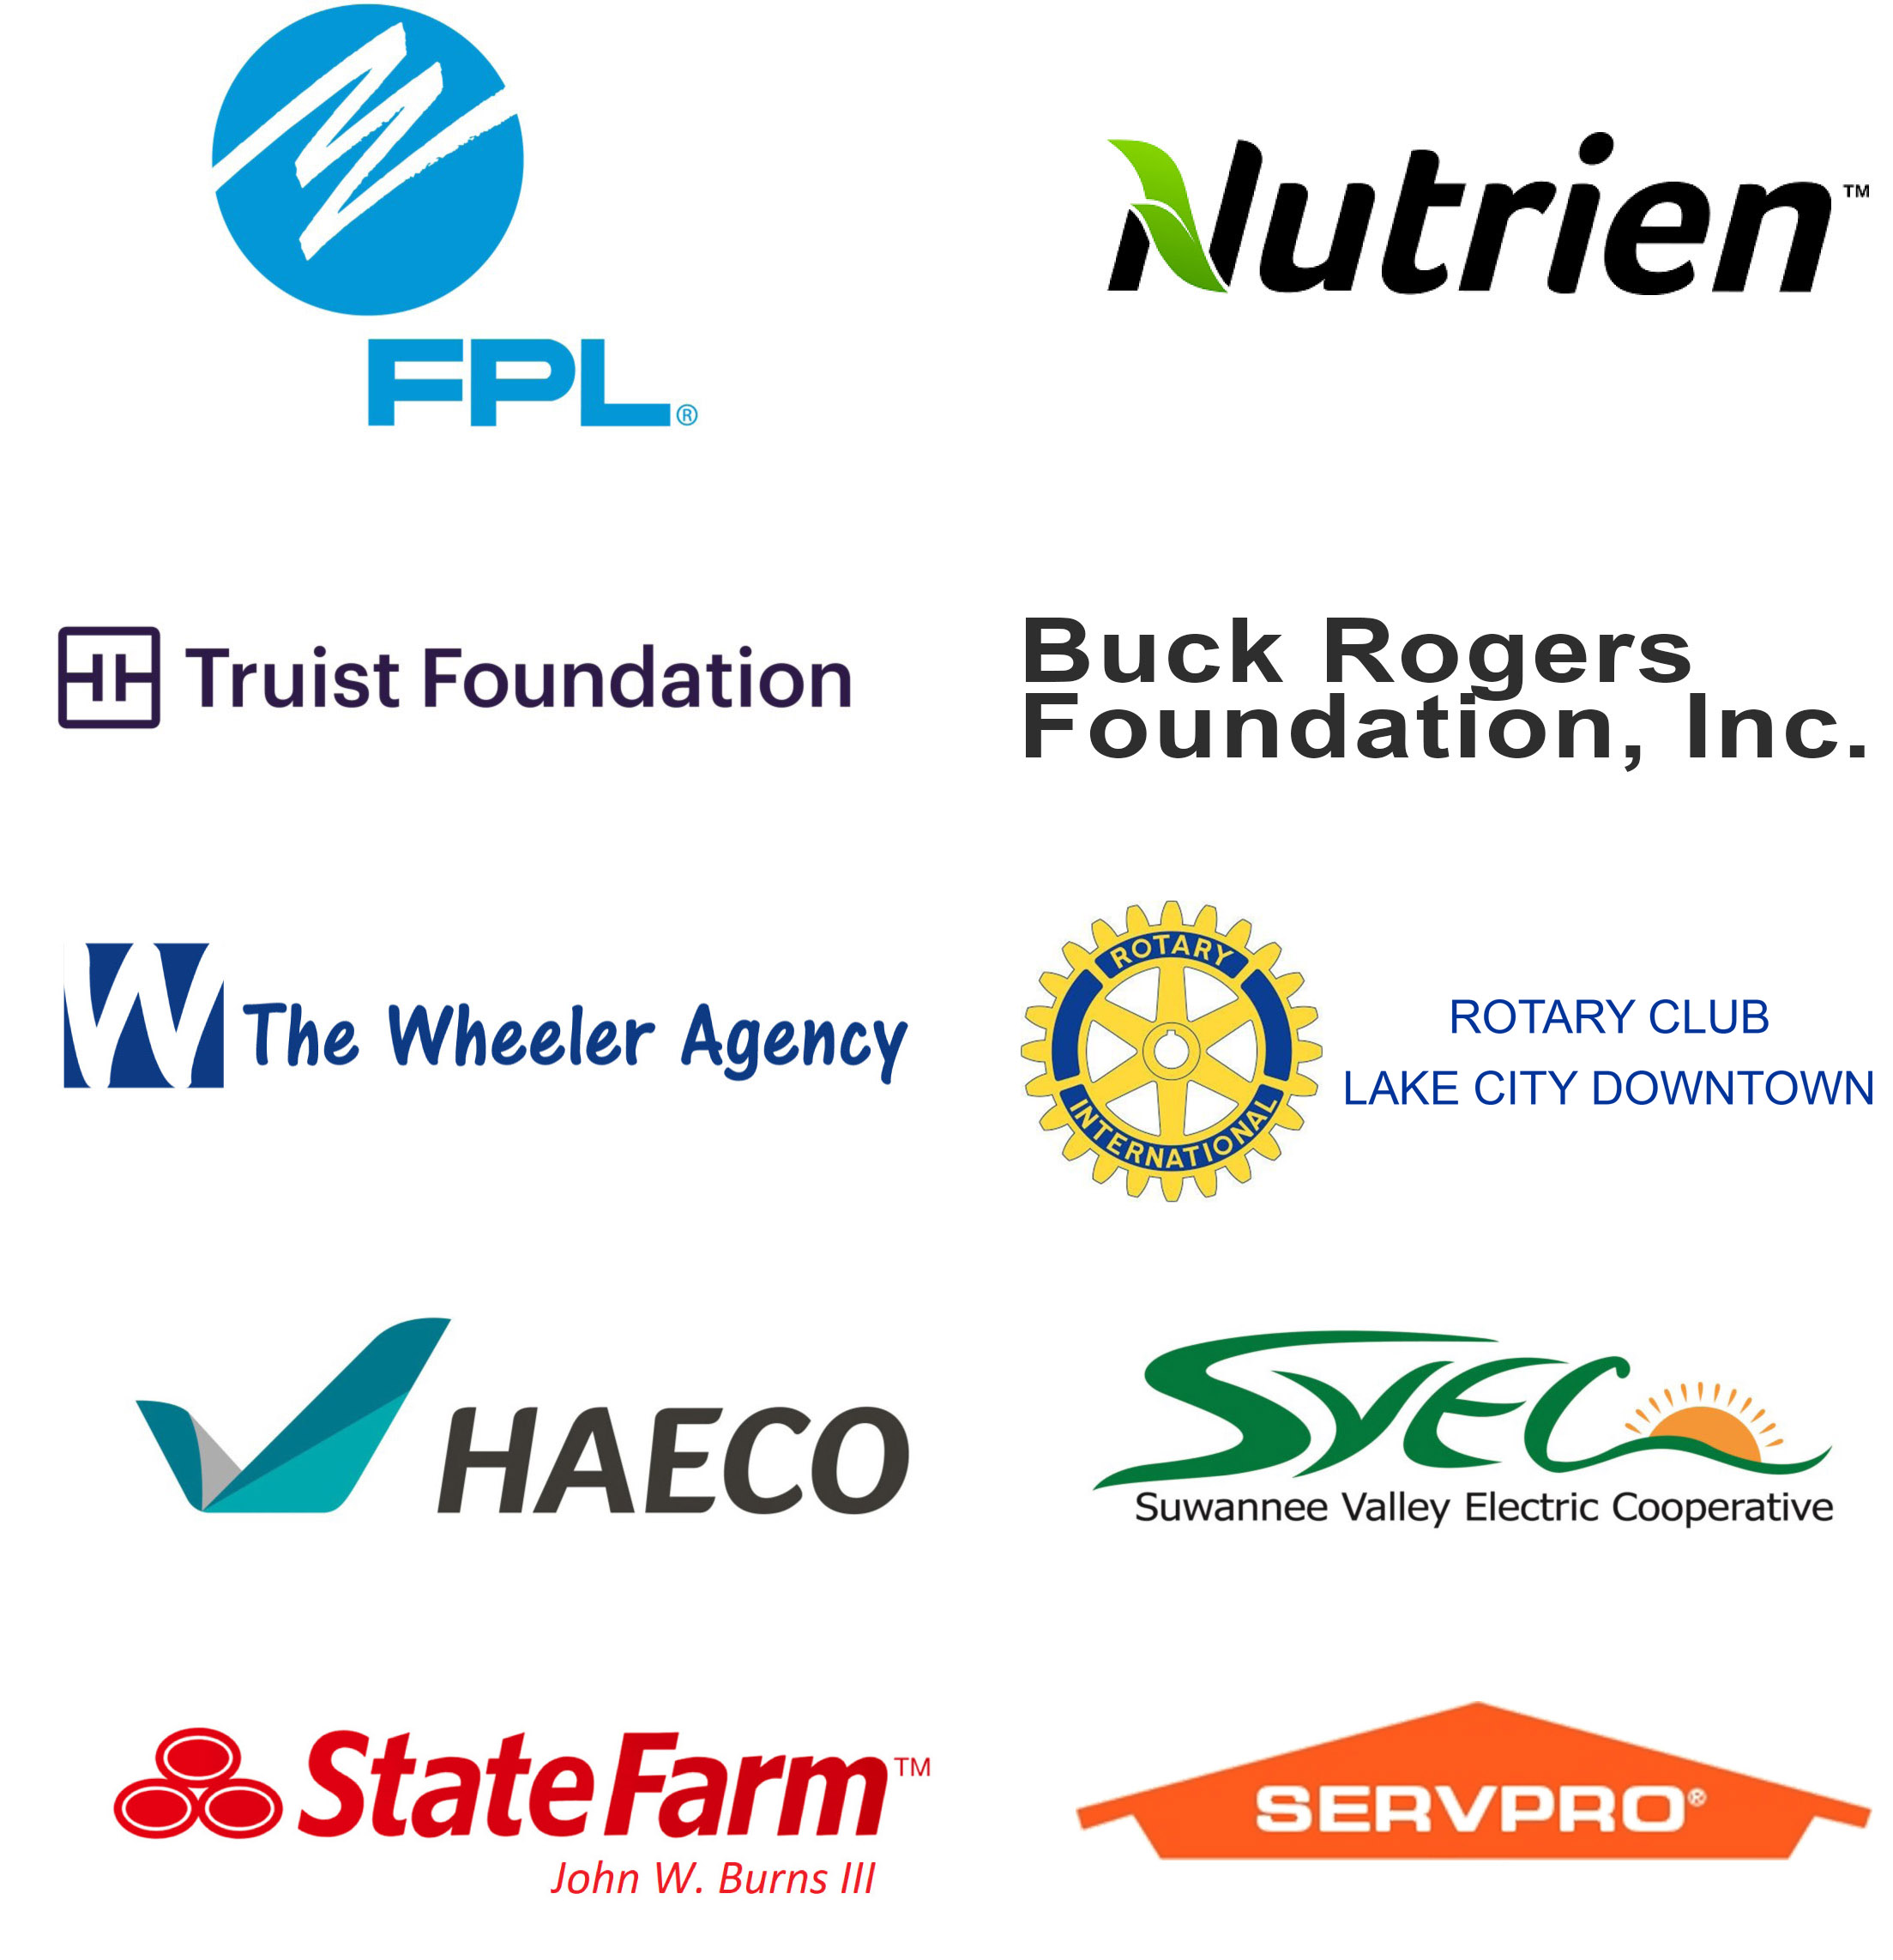 Corporate sponsors FPL, Nutrien, Truist Foundation, Buck Rogers Coundation, The Wheeler Agency, Haeco, SVEC, State Farm, Servpro